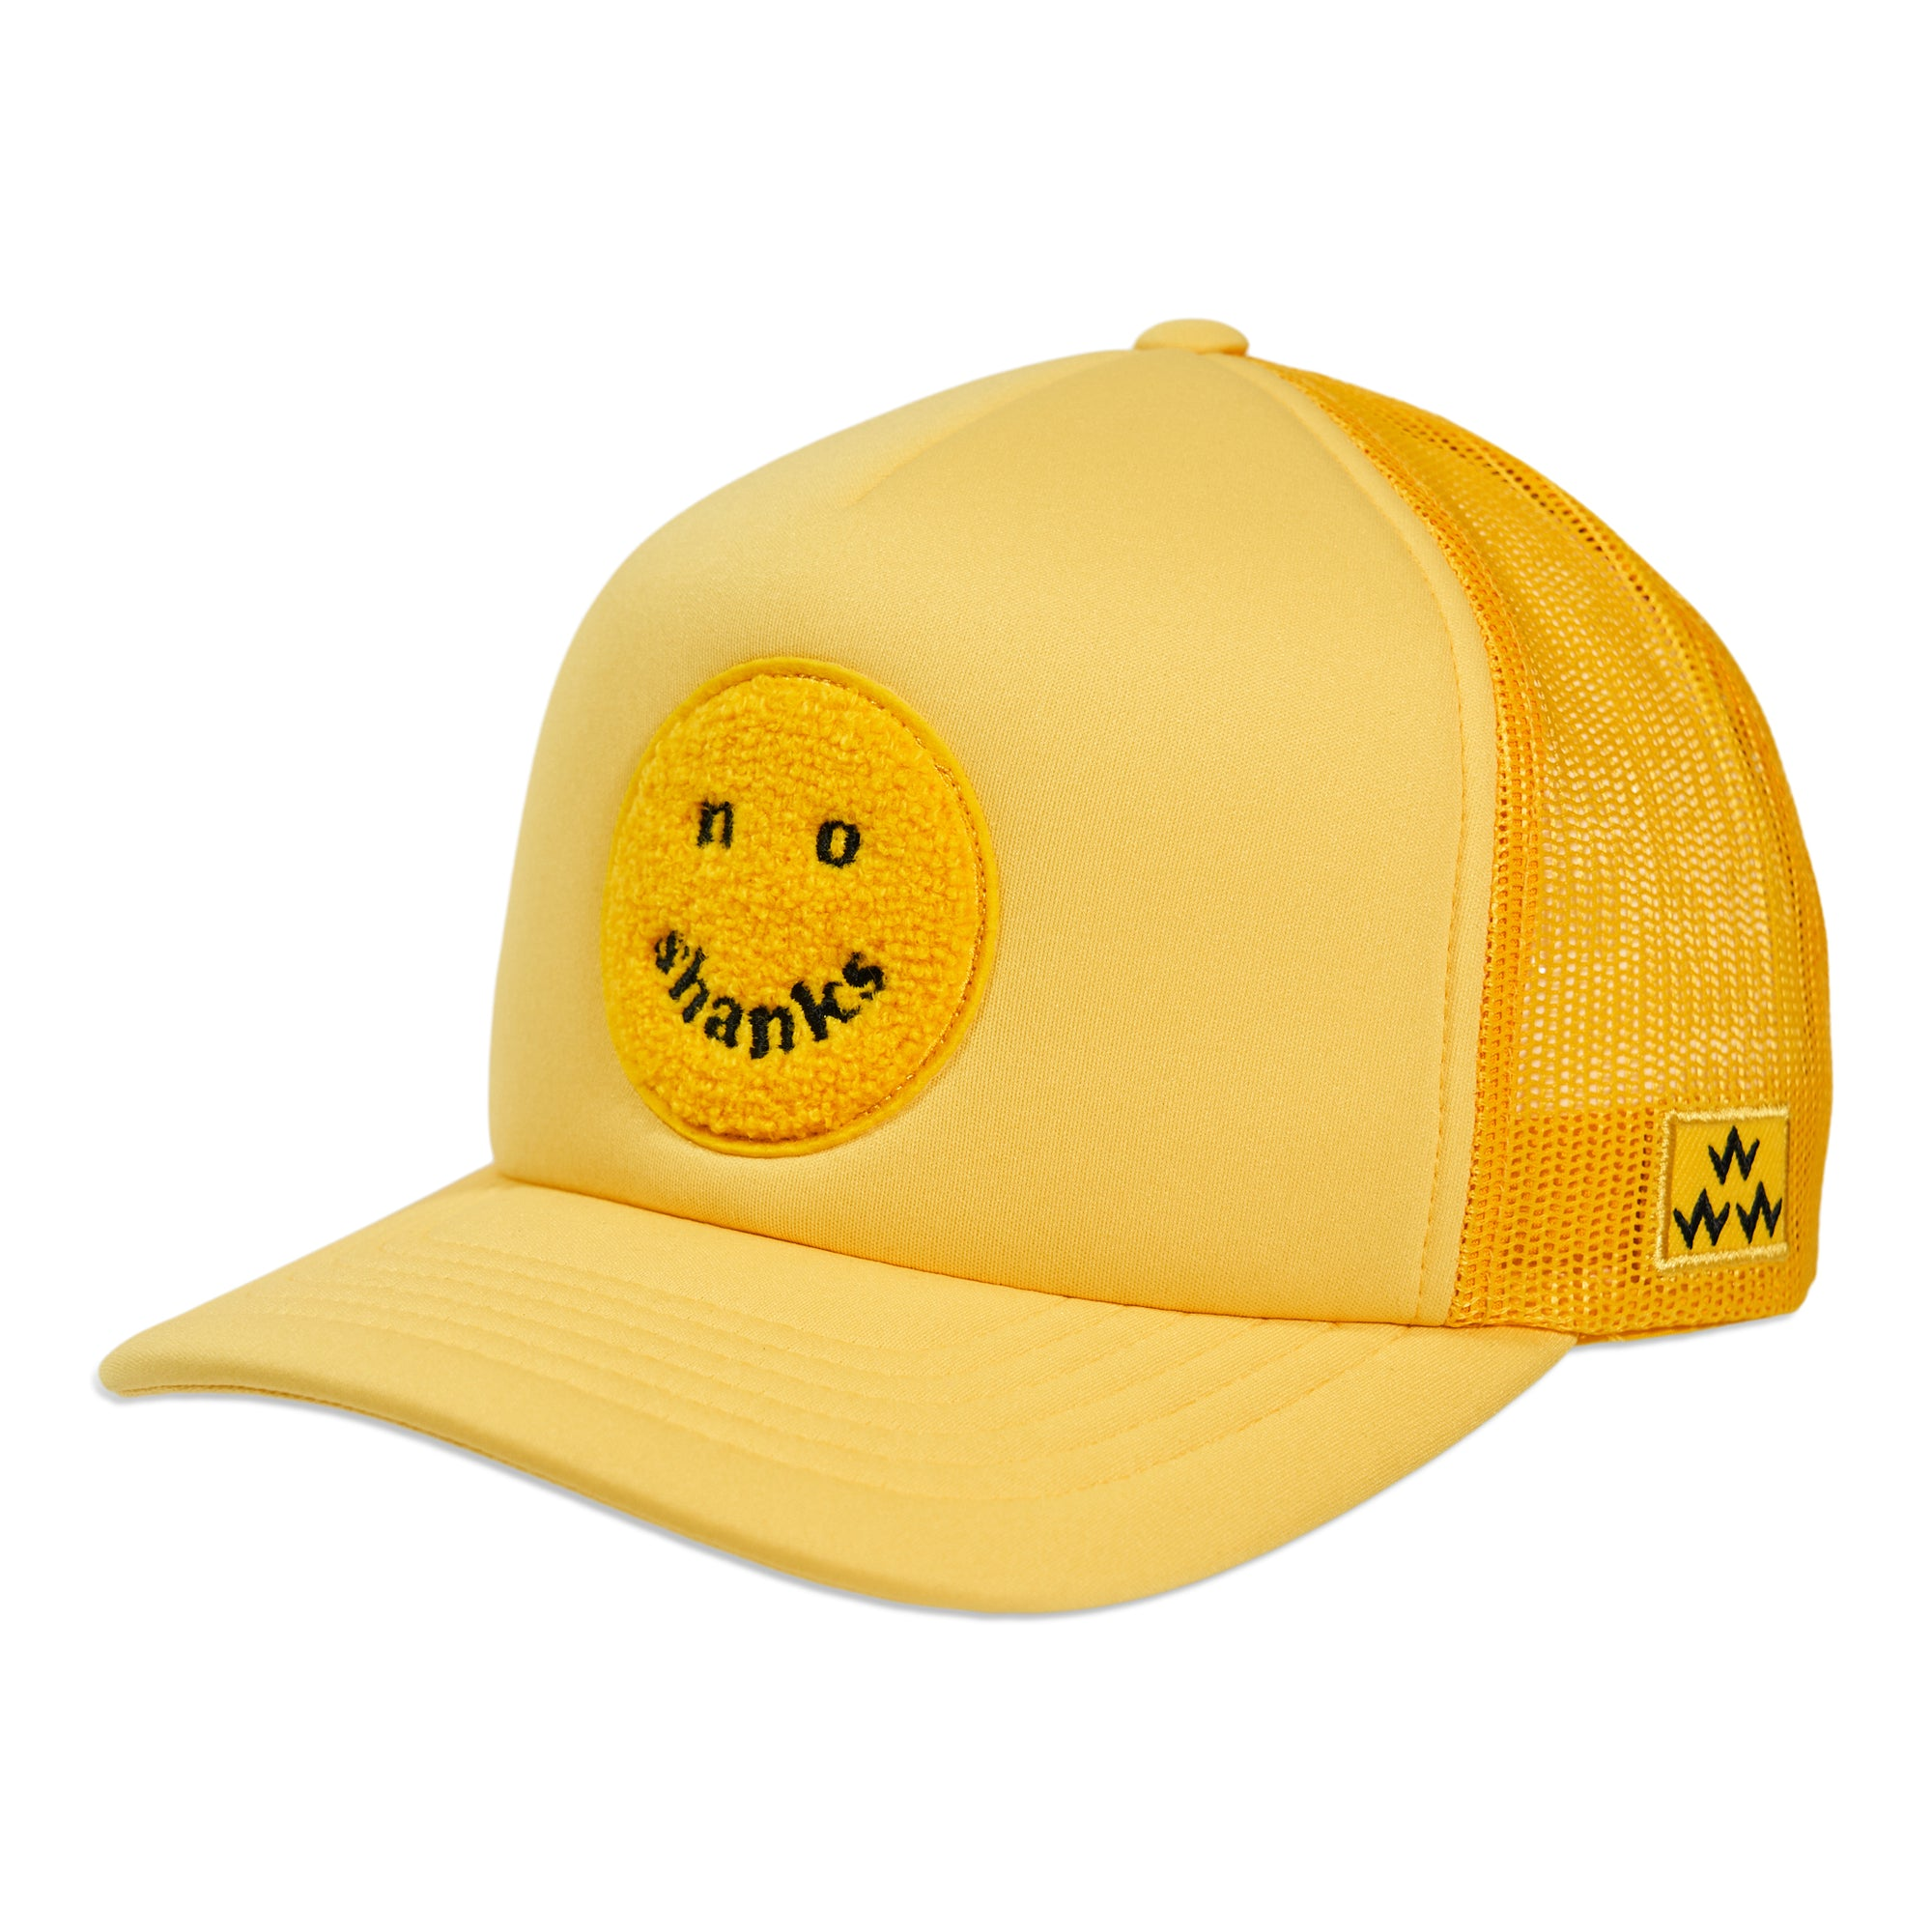 birds-of-condor-yellow-no-shanks-trucker-mesh-golf-hat-cap-front